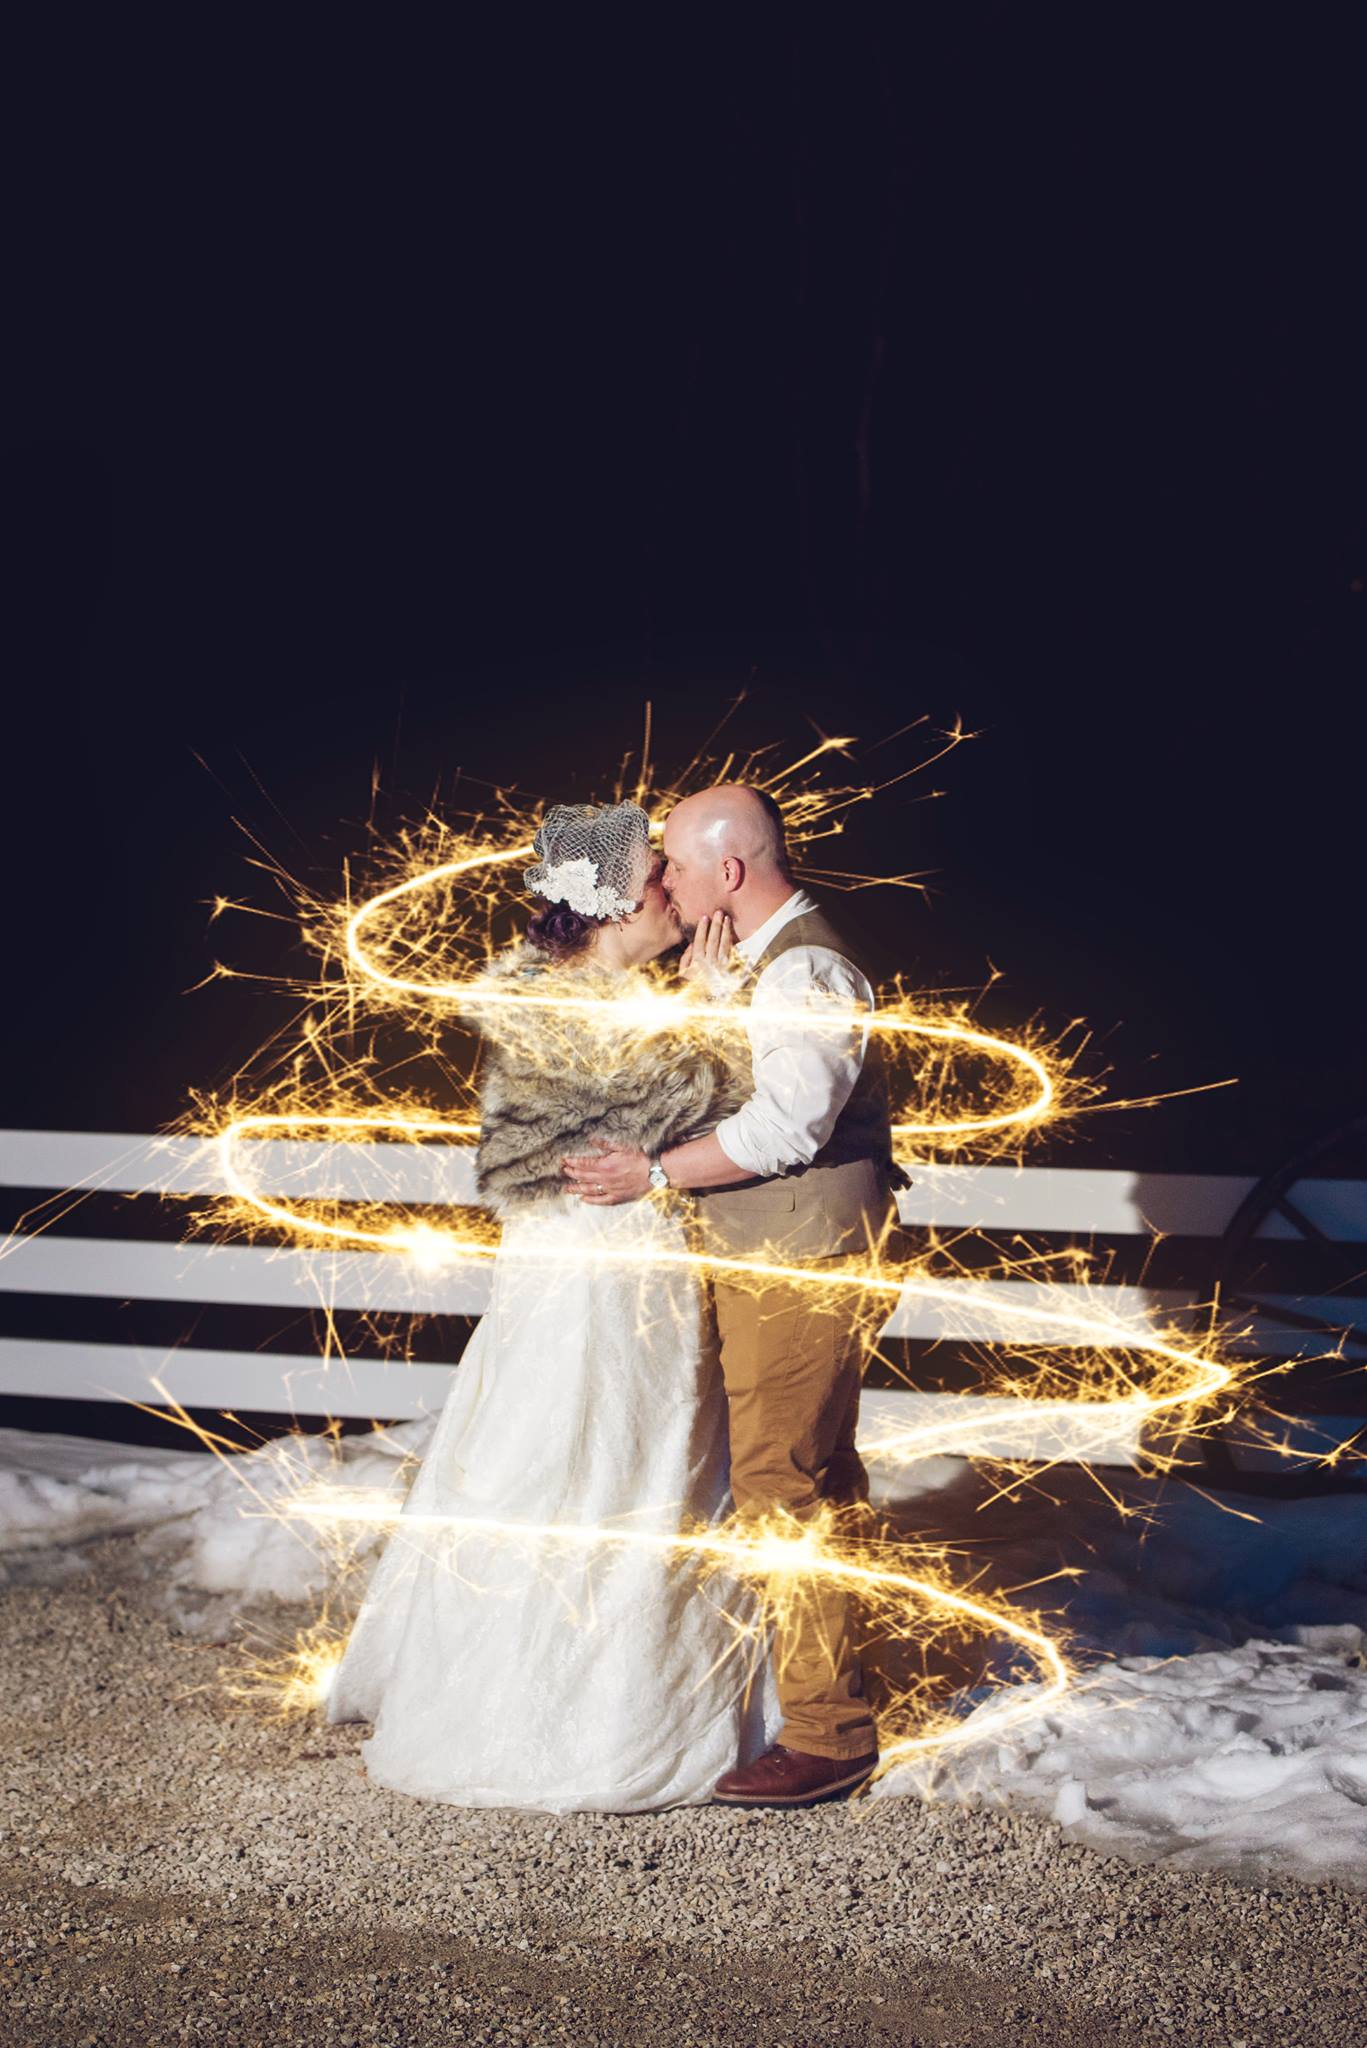 Danielle Albrecht all inclusive wedding photographer for fab weddings, sparkler